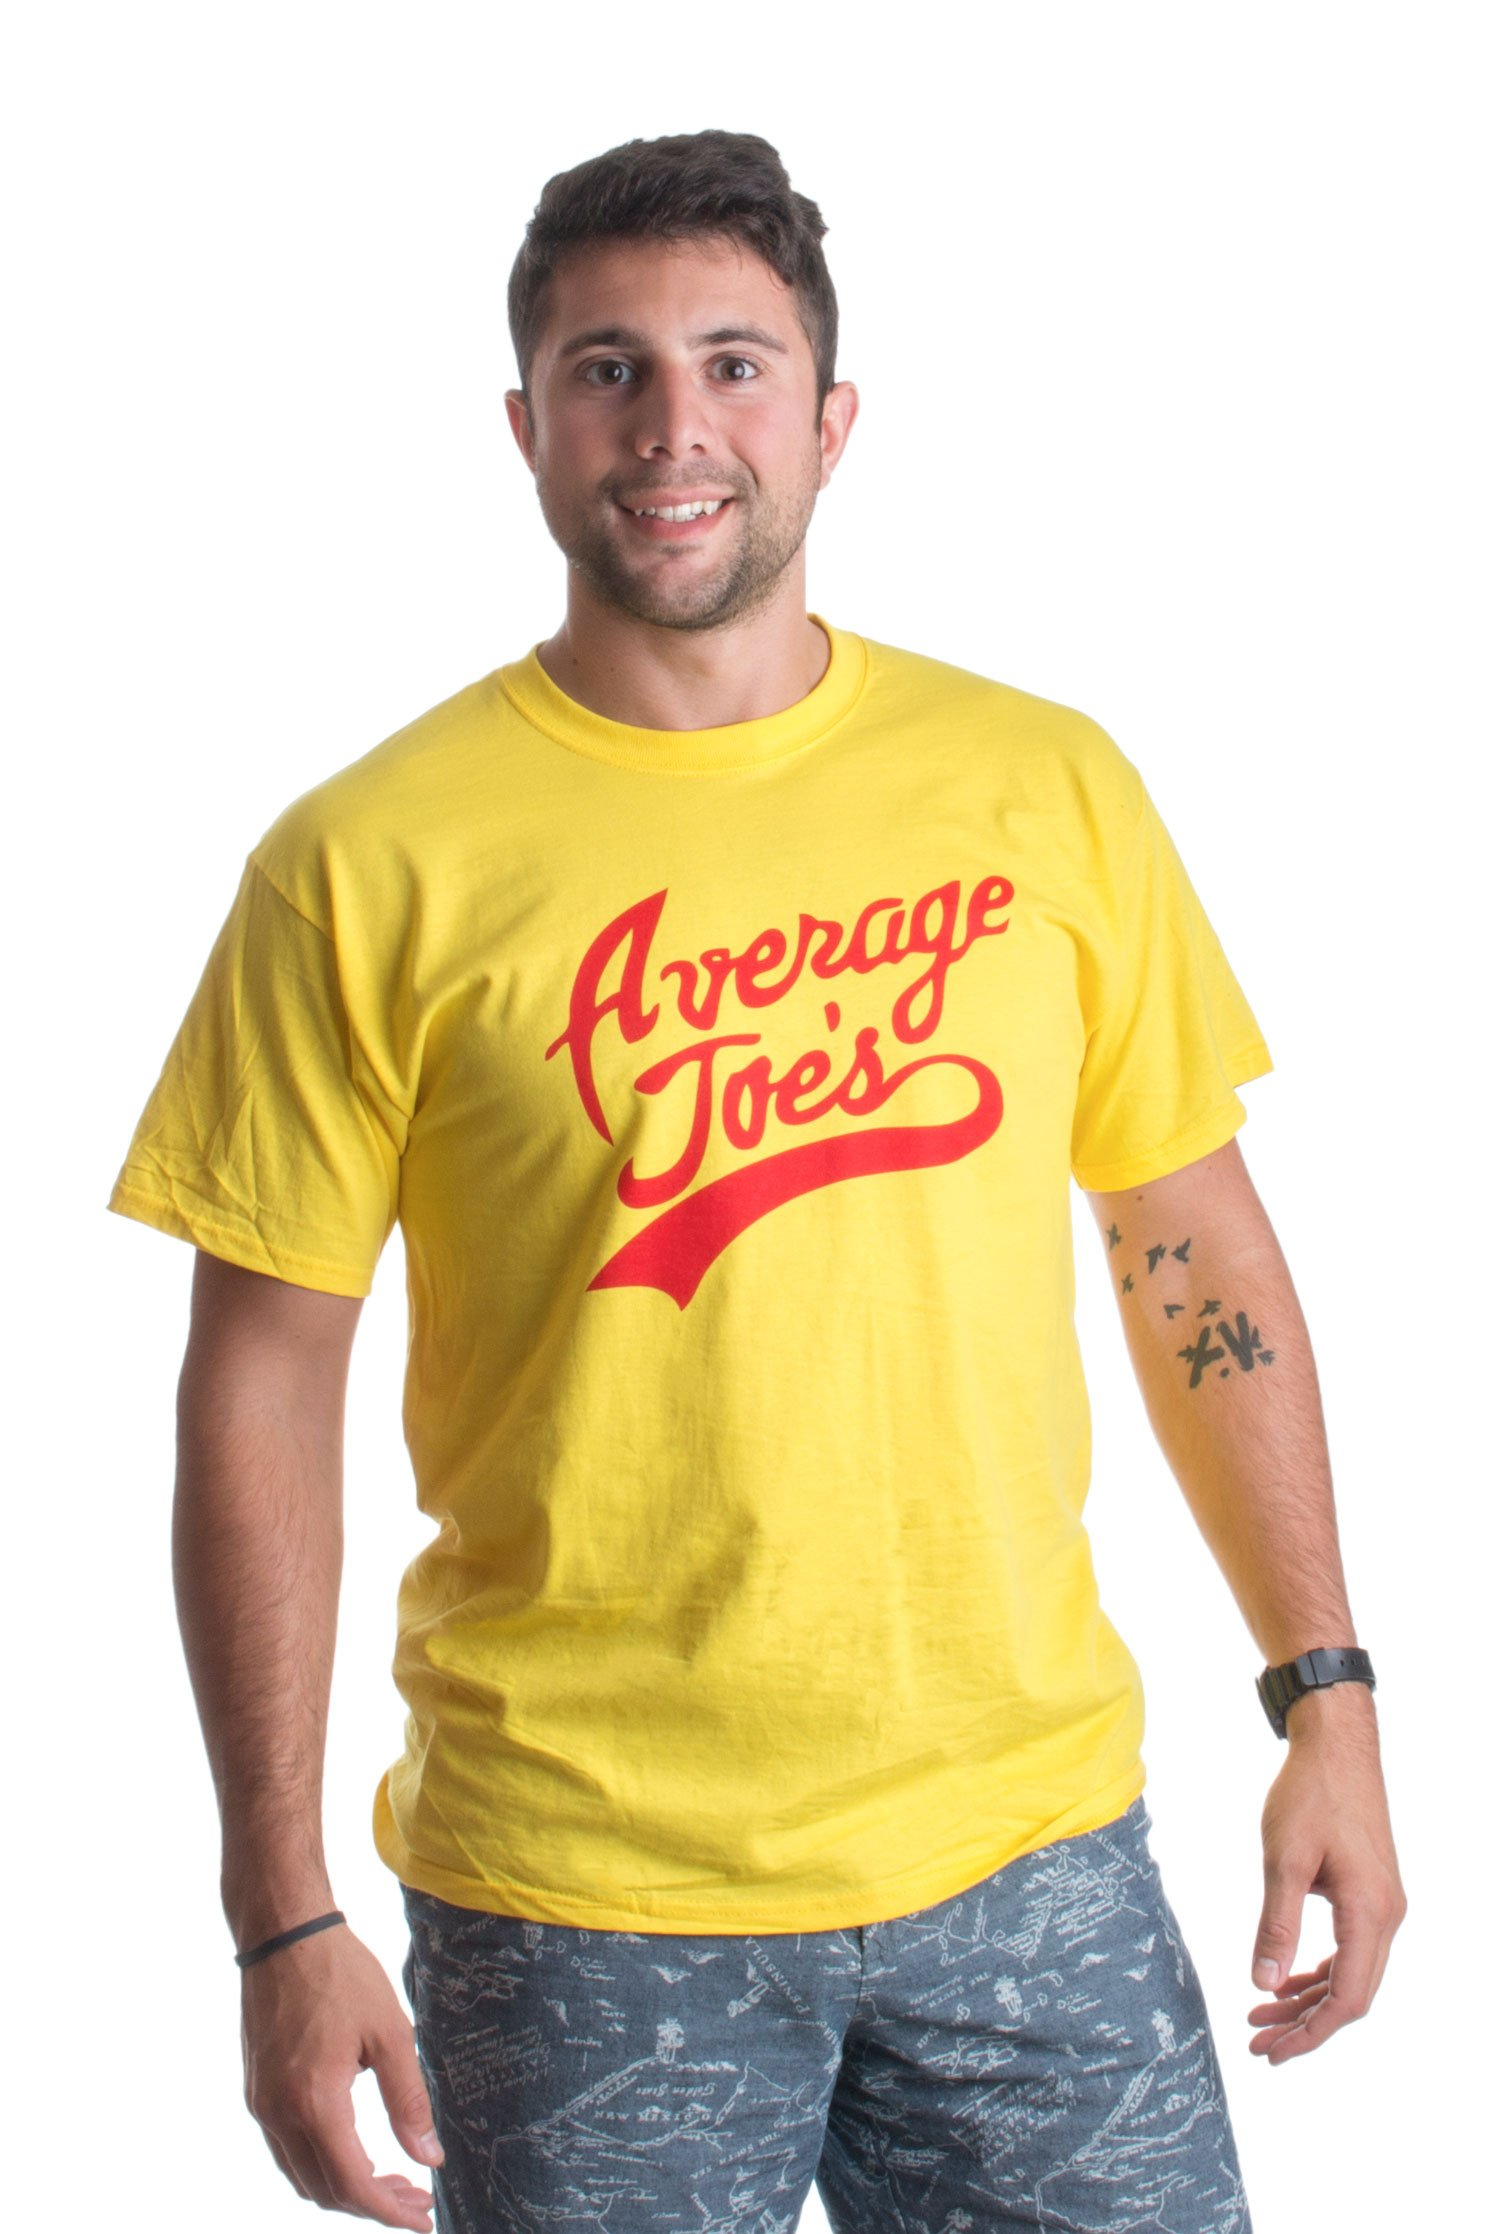 Average JOES Unisex T-Shirt/Funny Dodgeball Team Jersey Joe's T-Shirts